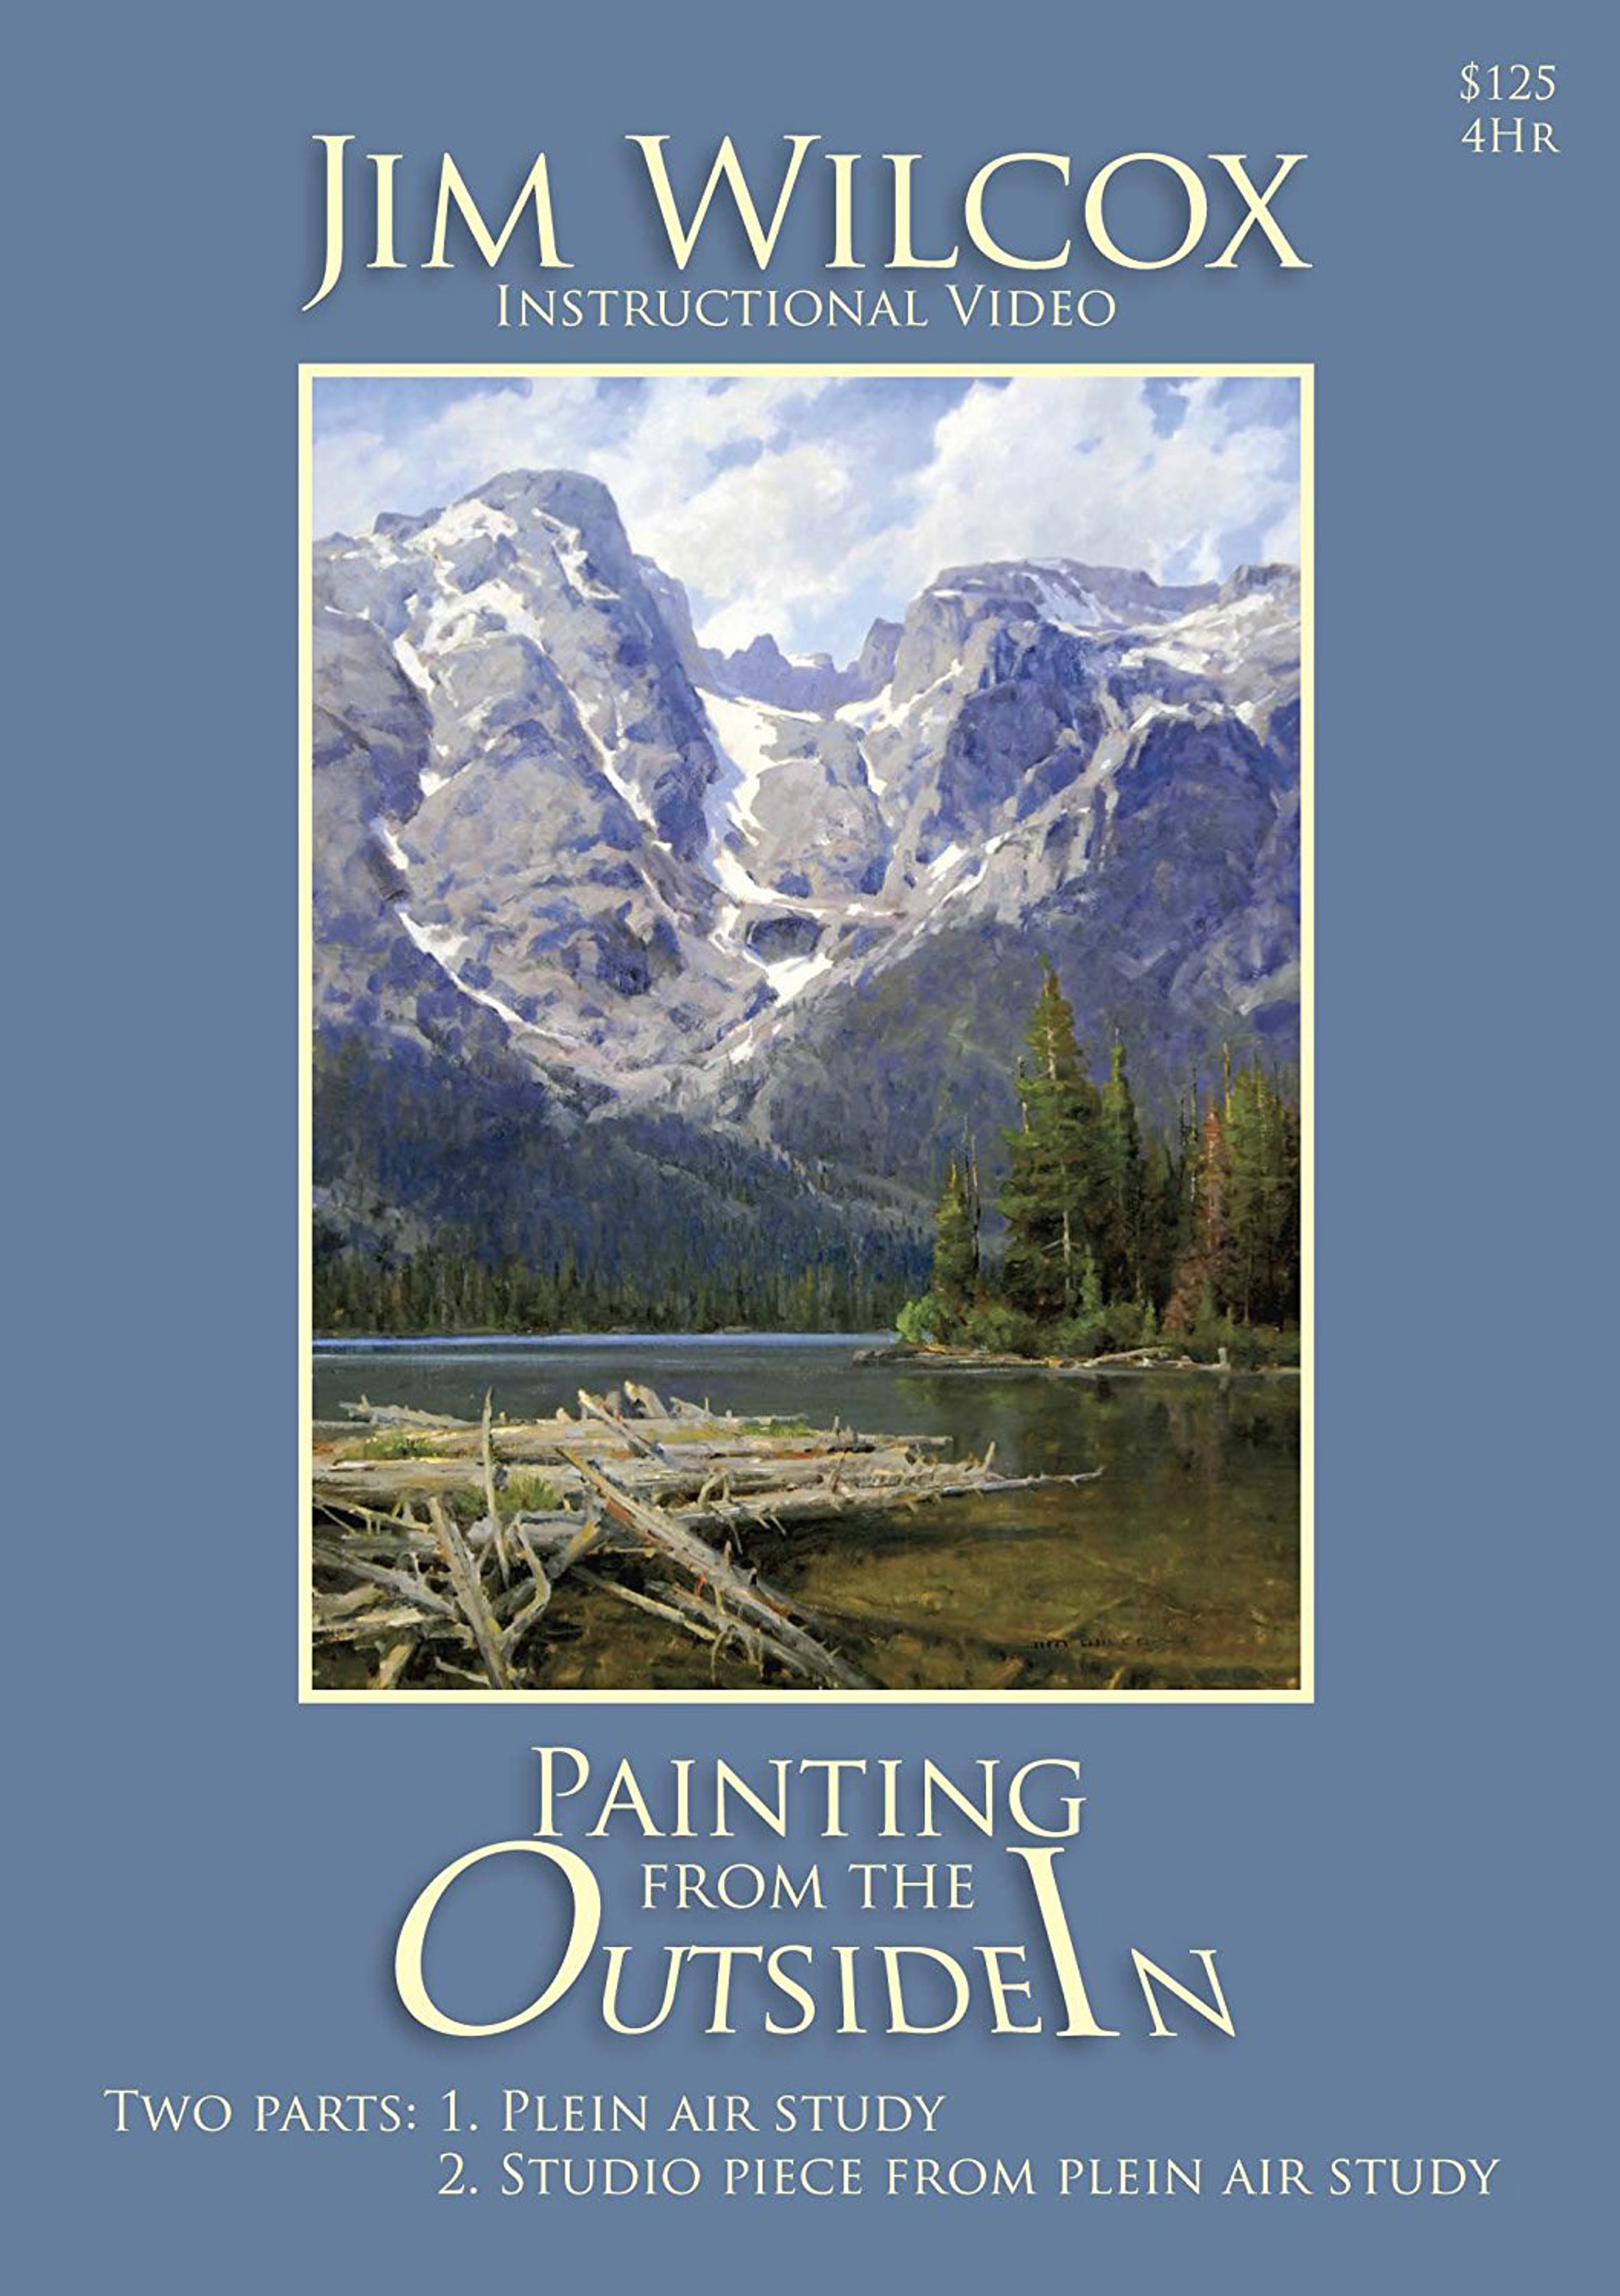 Painting from the Outside In DVD by Jim Wilcox